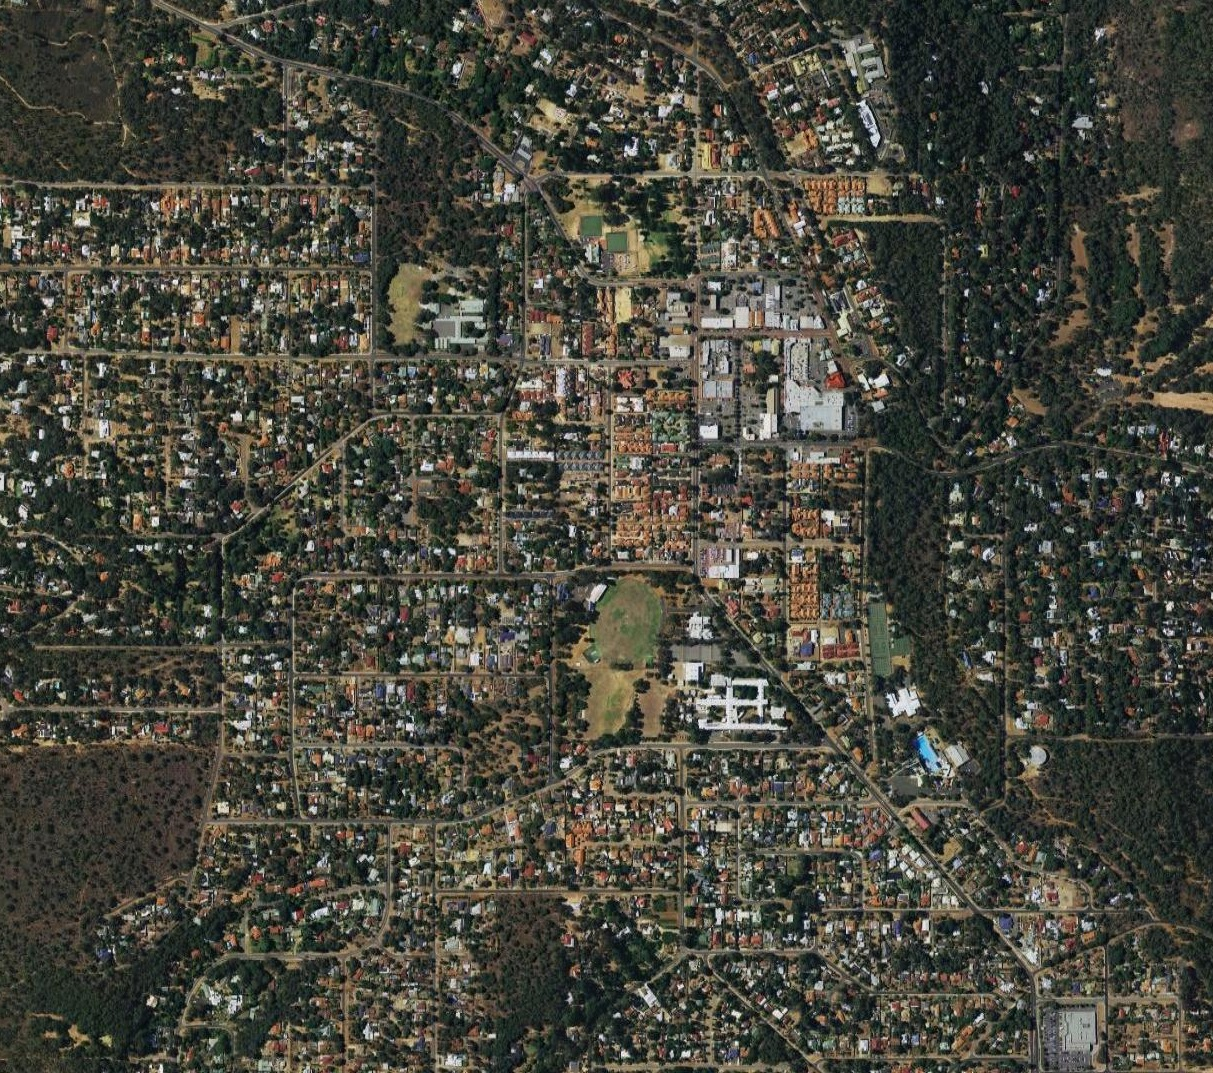 Aerial imagery of the suburb of Kalamunda